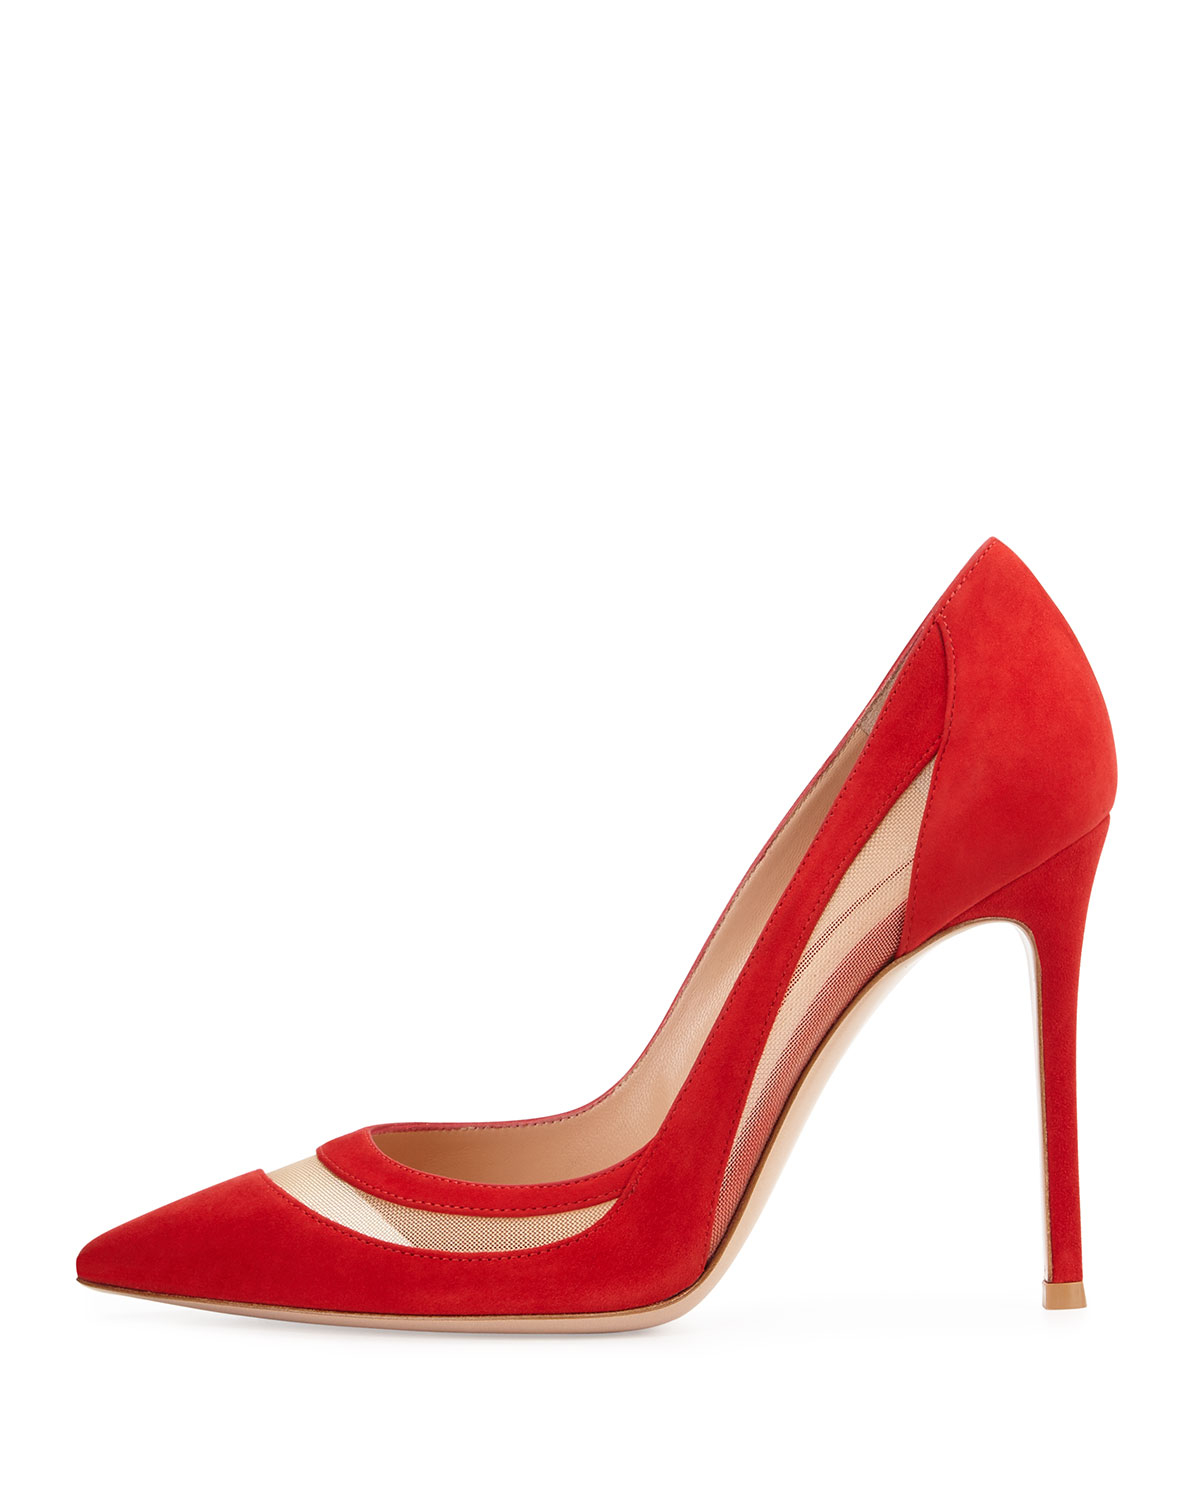 358f1168ffe4 Lyst - Gianvito Rossi Mesh-Insert Suede Pointed-Toe Pumps in Red